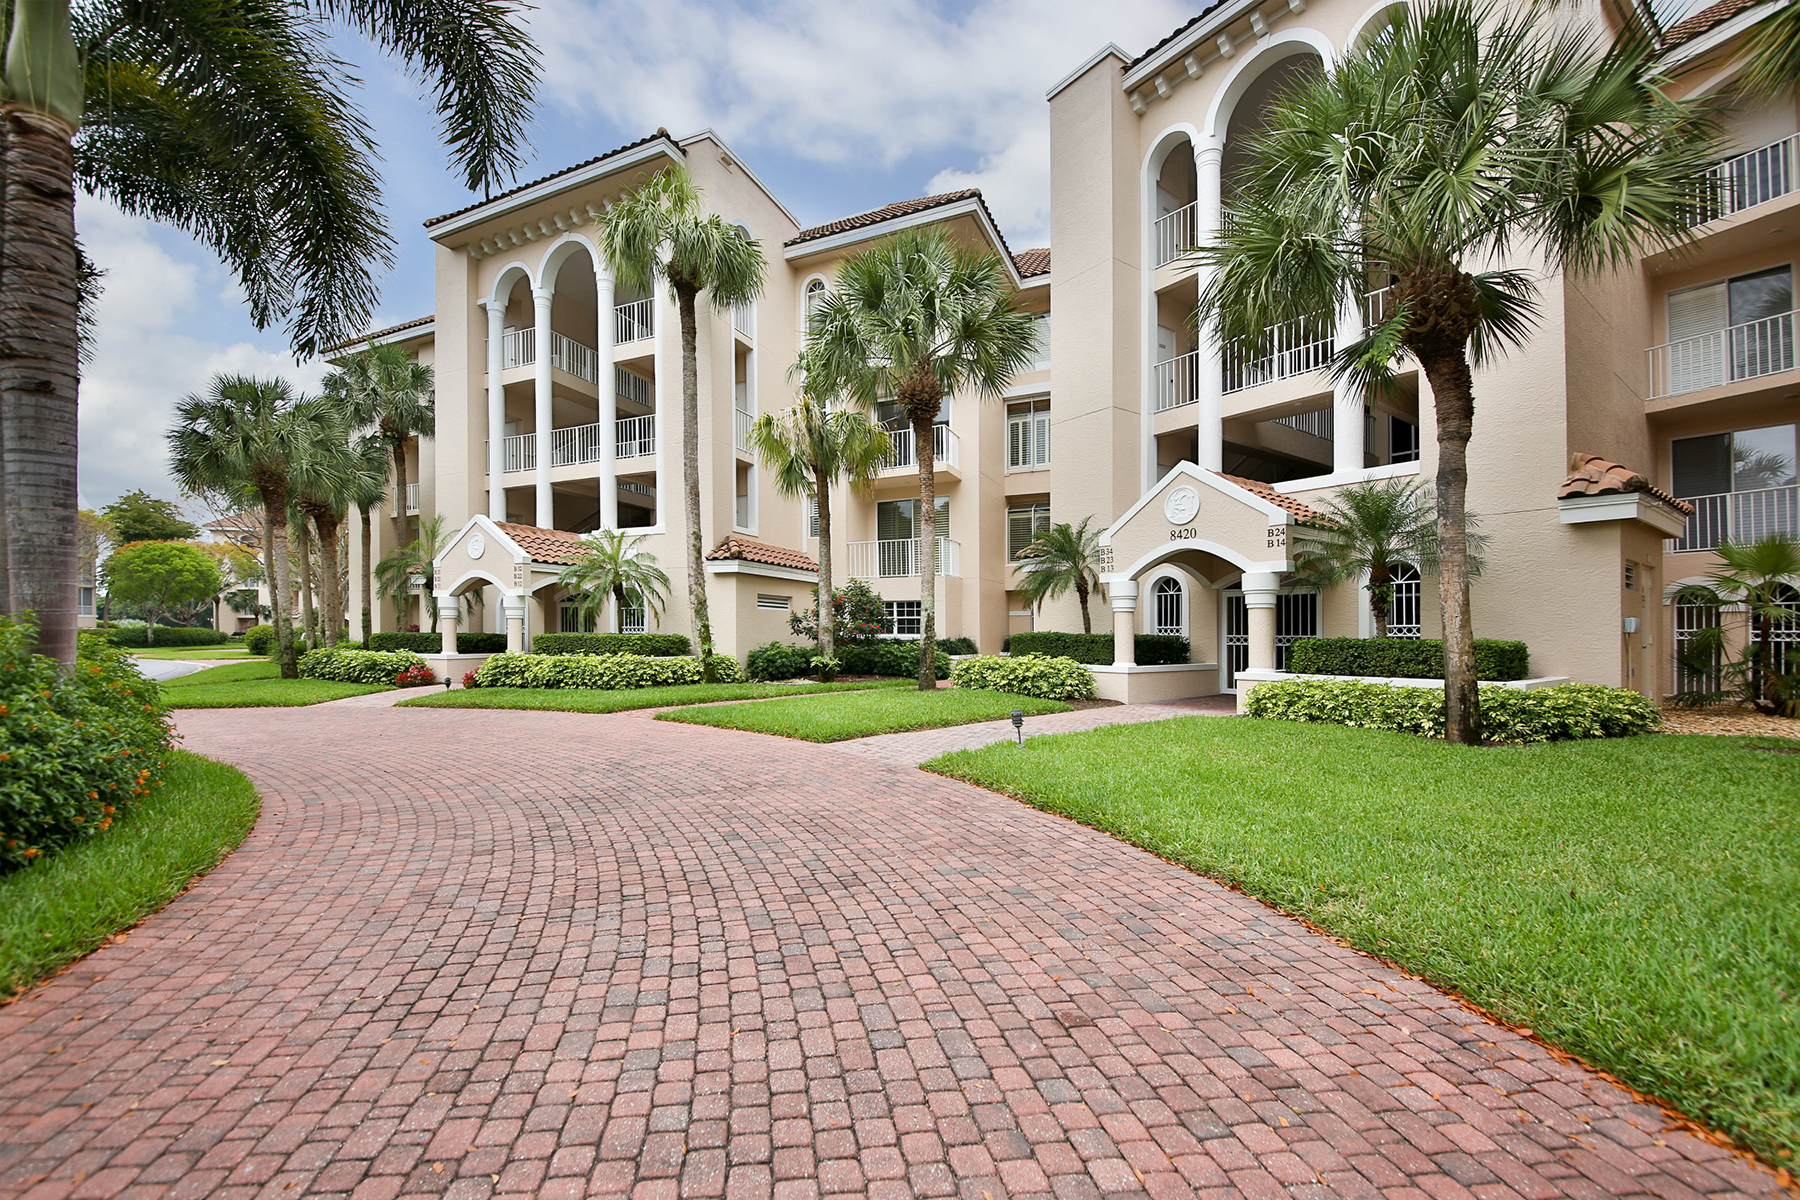 Condominium for Sale at 8420 Abbington Cir , B31, Naples, FL 34108 8420 Abbington Cir B31 Naples, Florida, 34108 United States